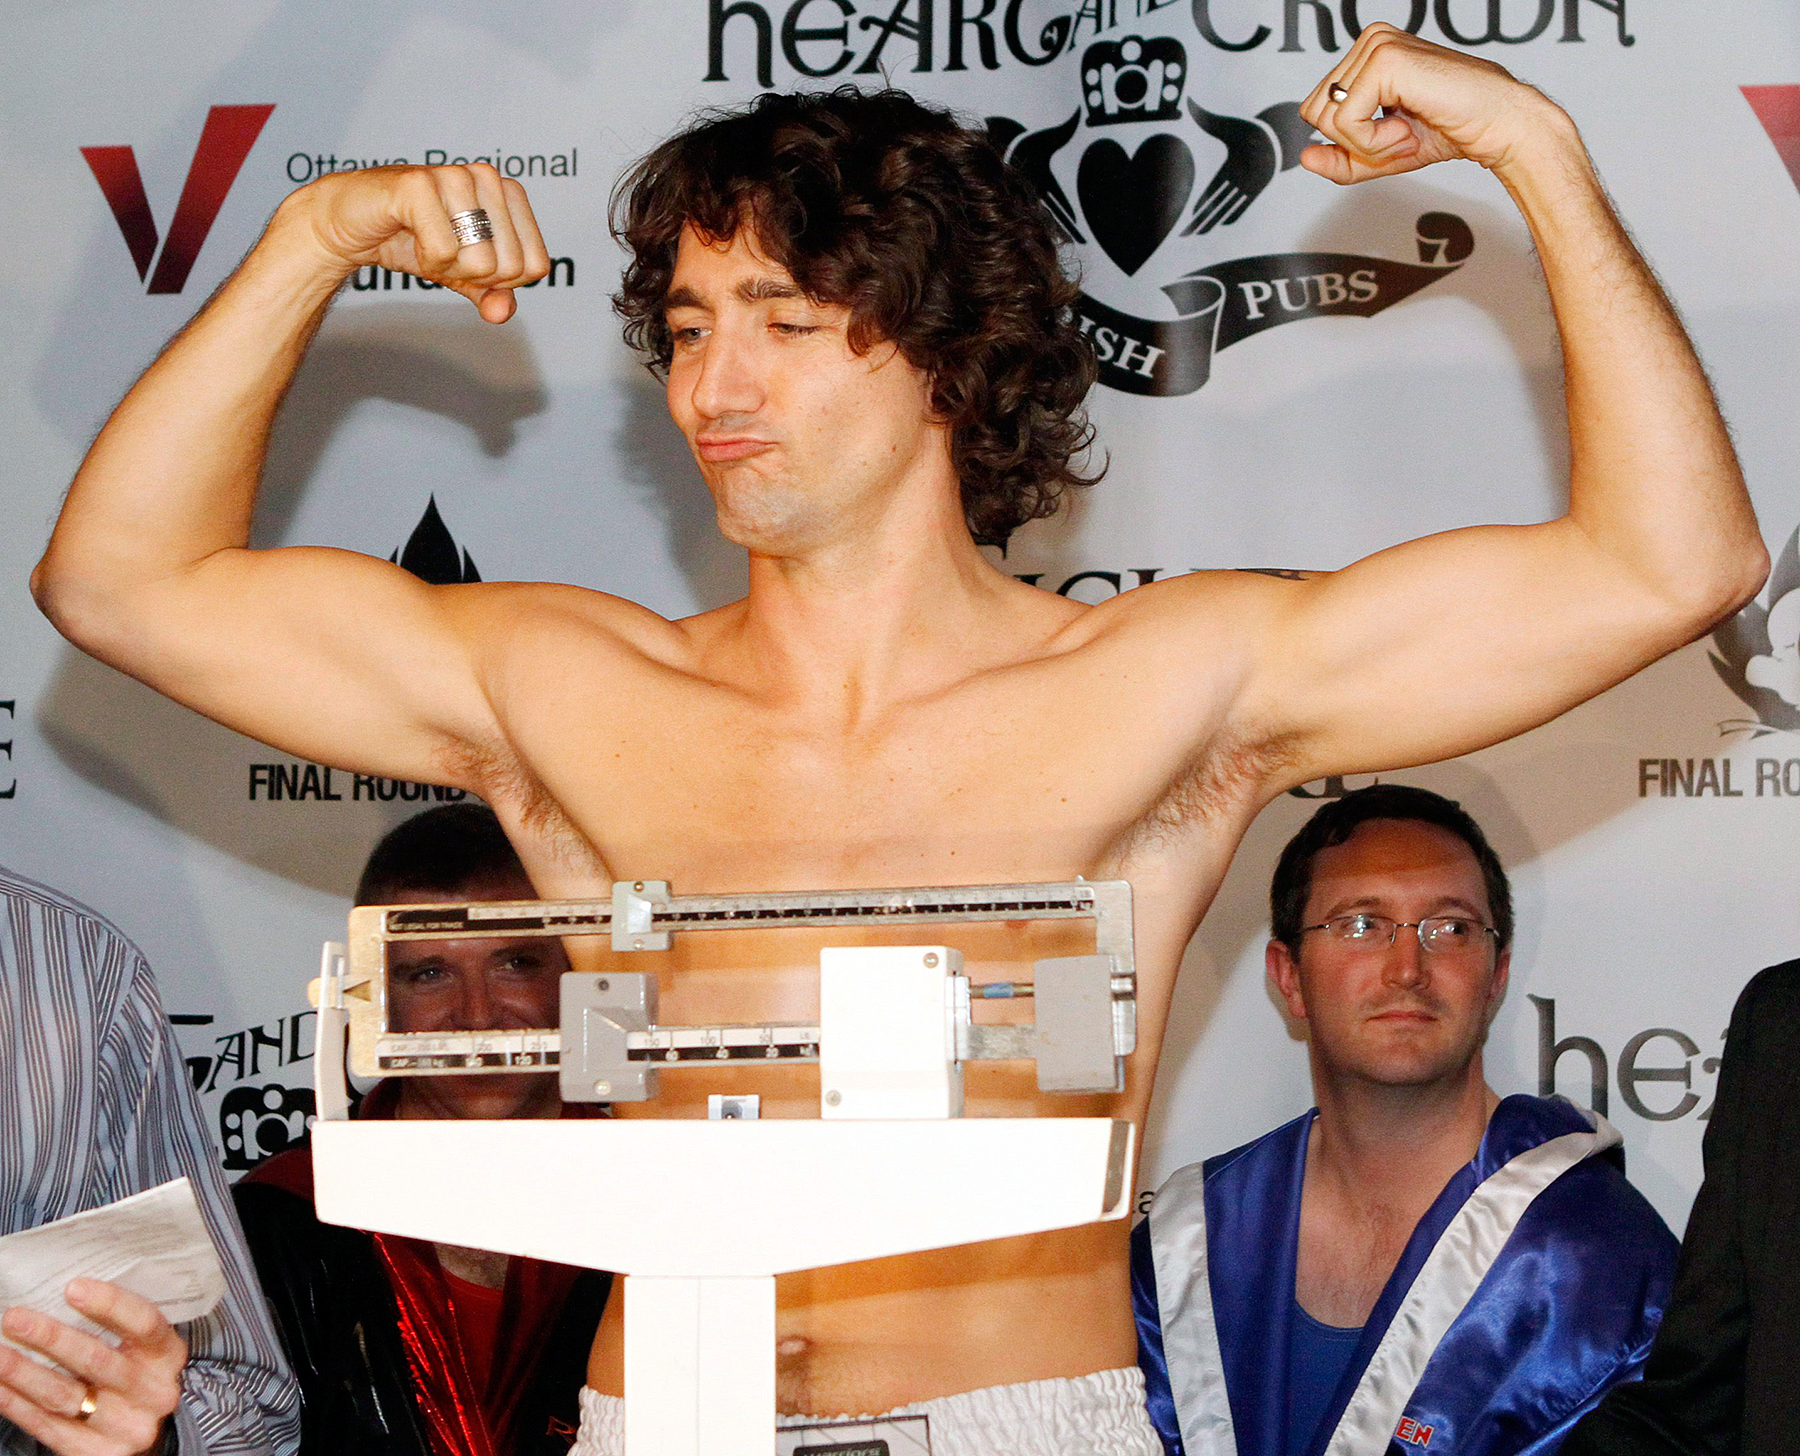 Justin Trudeau boxing weigh in 2012 shirtless